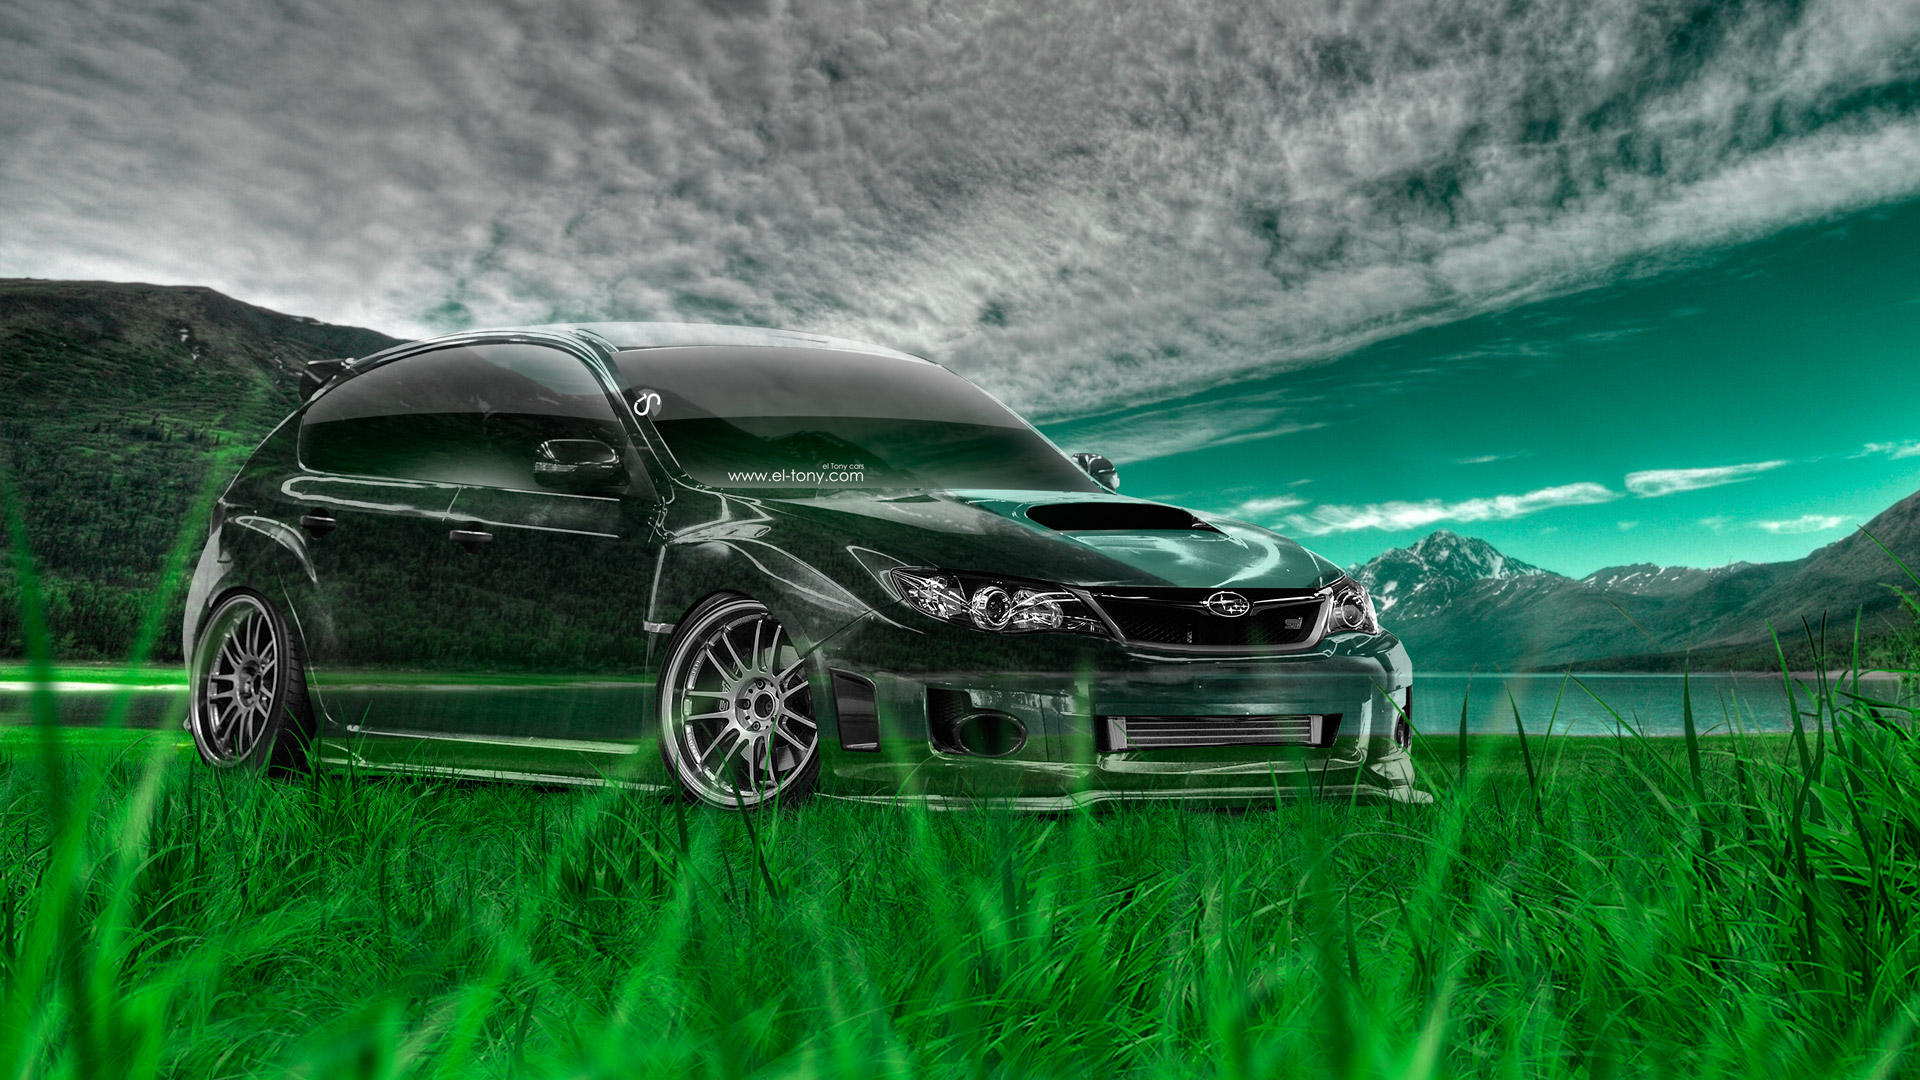 Good Beau Subaru Impreza WRX STI JDM Crystal Nature Car 2014